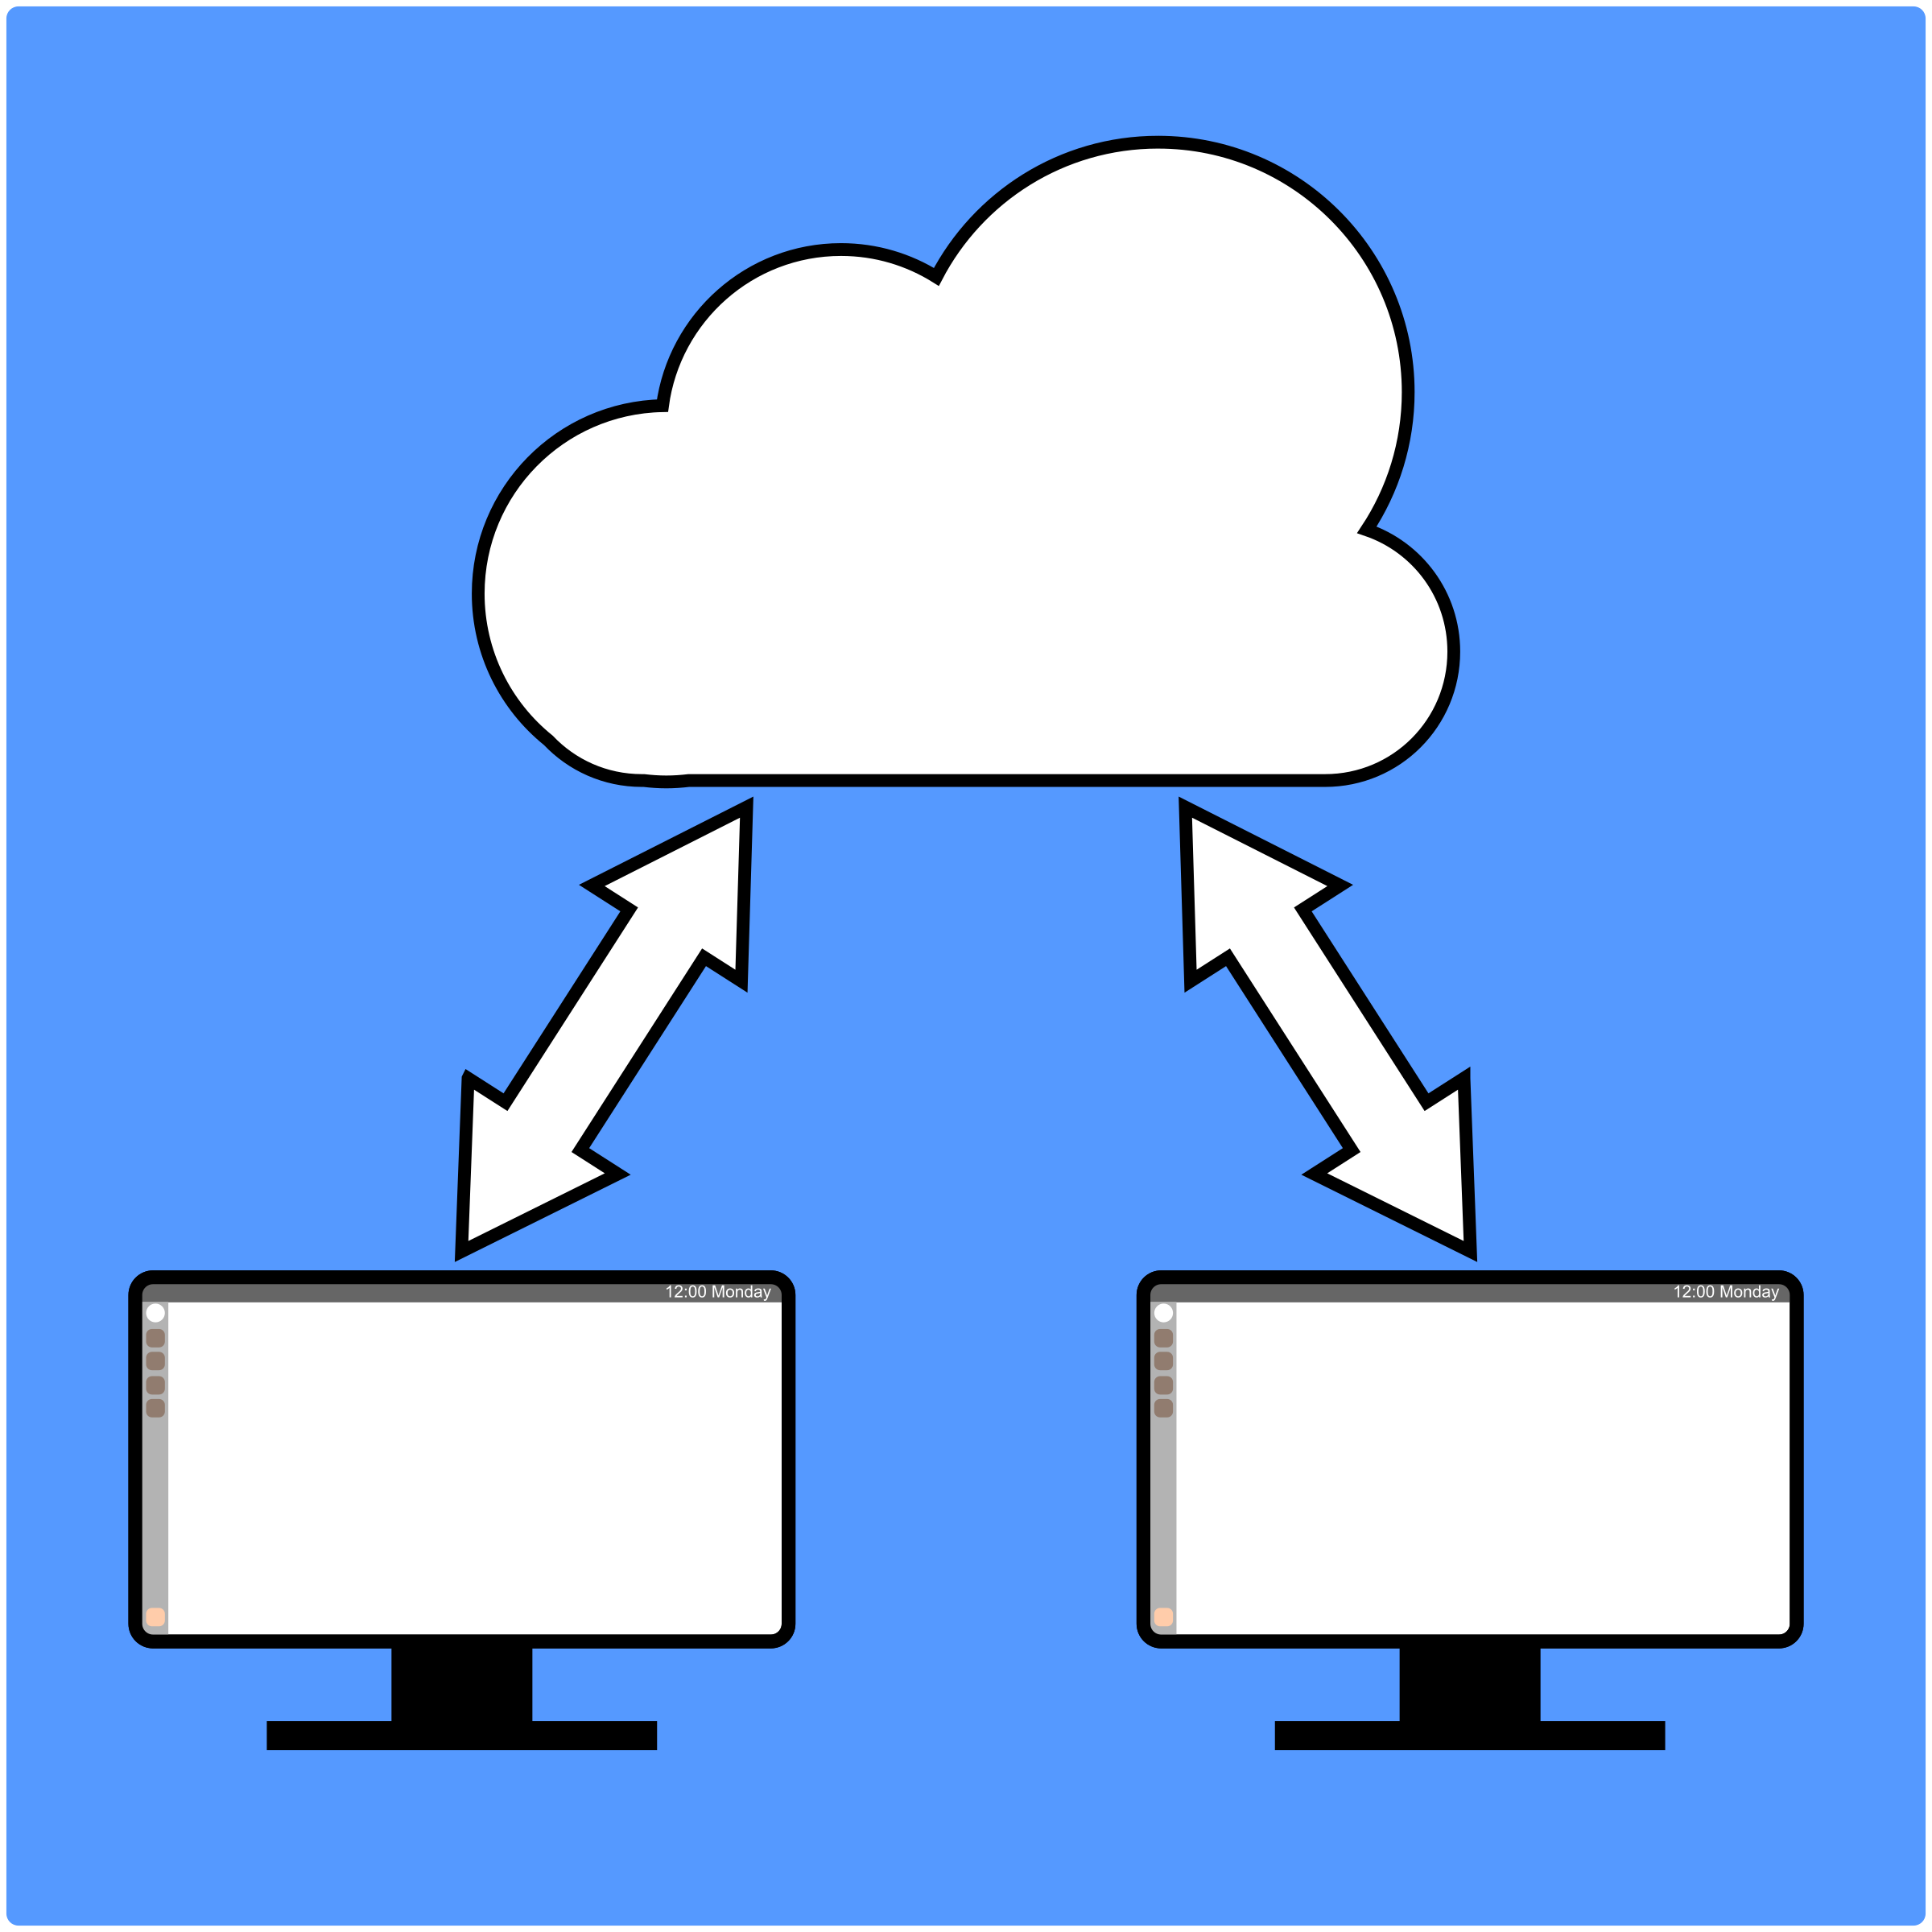 Two computers sharing using the cloud by Dustwin